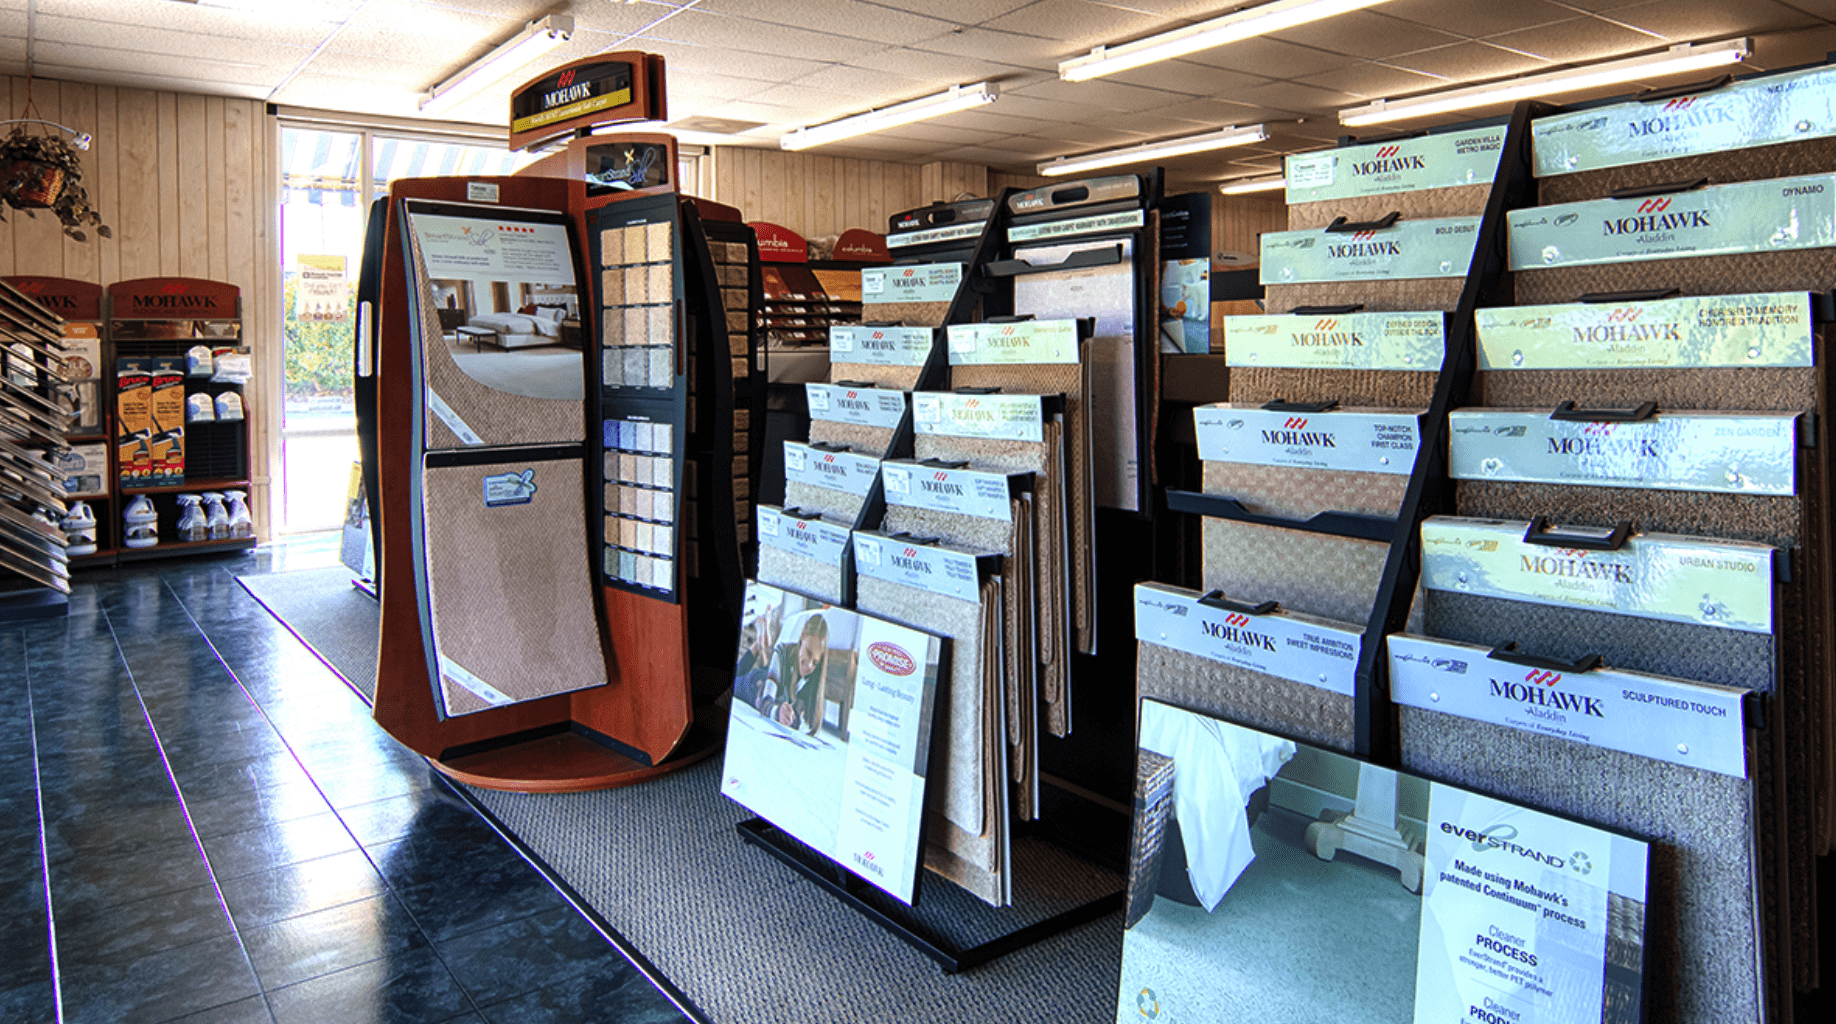 Carpet in Loris, SC from the Waccamaw Floor Covering showroom